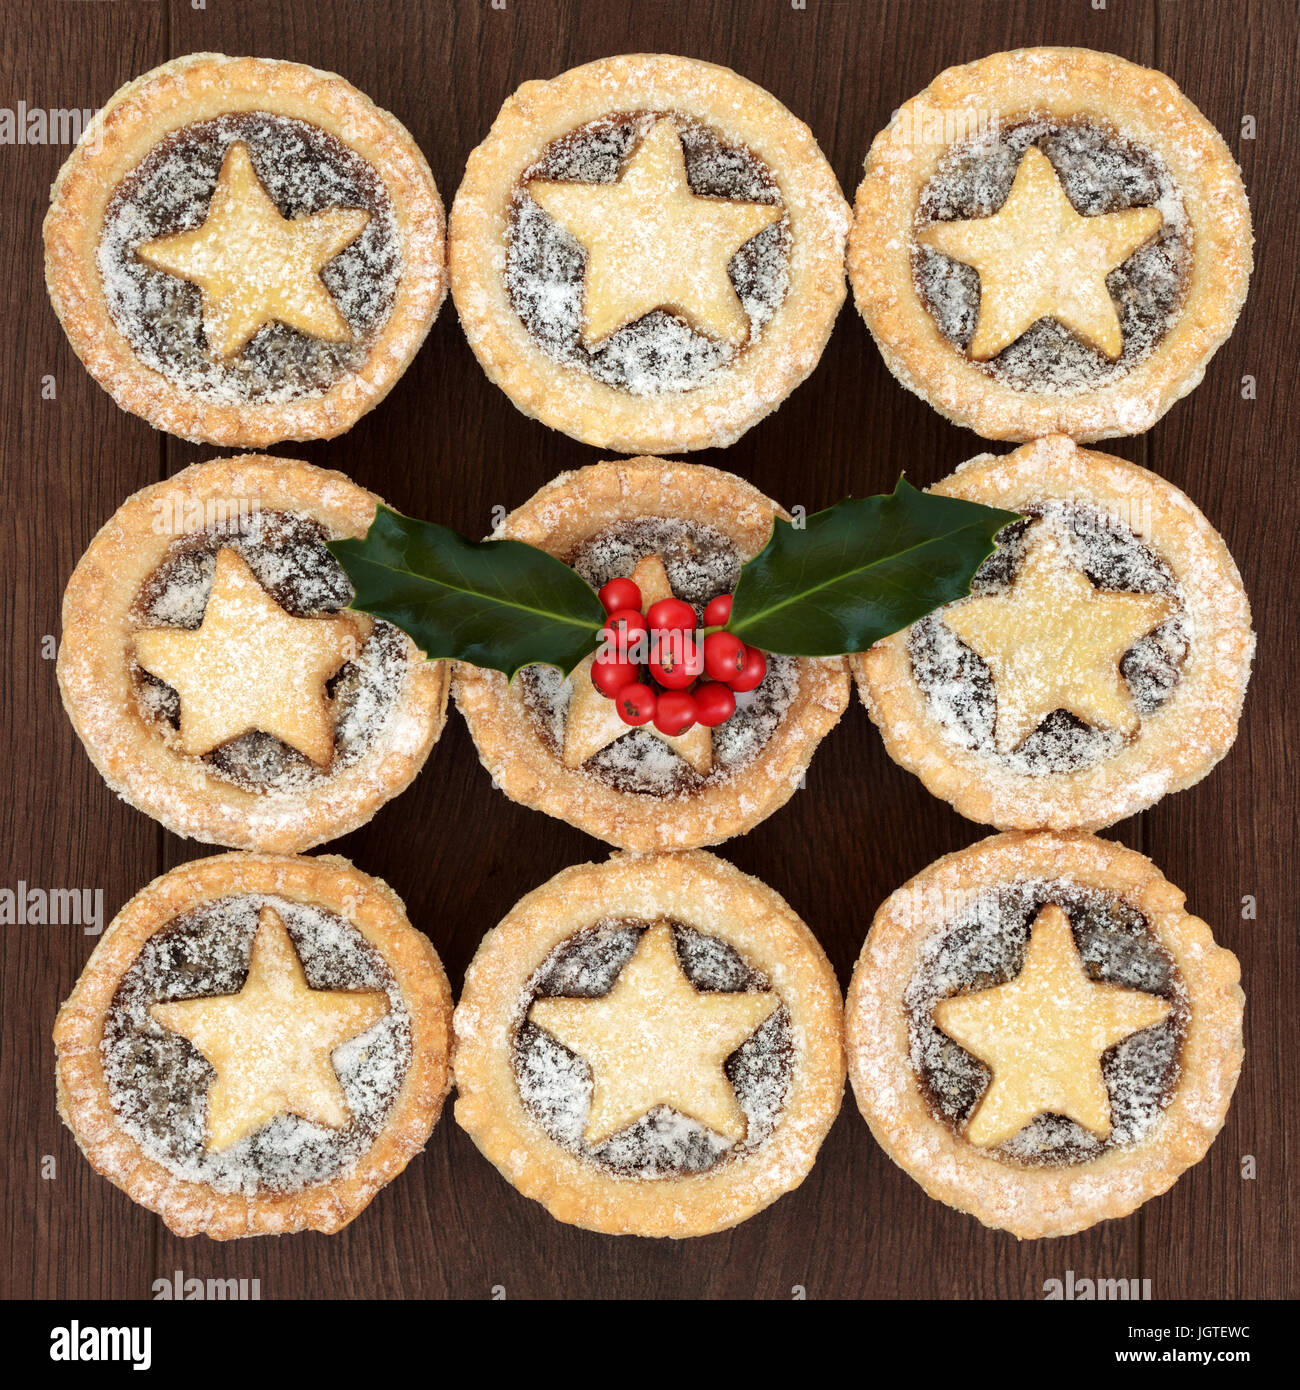 Homemade christmas mince pies with pastry stars and icing sugar dusting, holly and red berries on oak wood background. Stock Photo